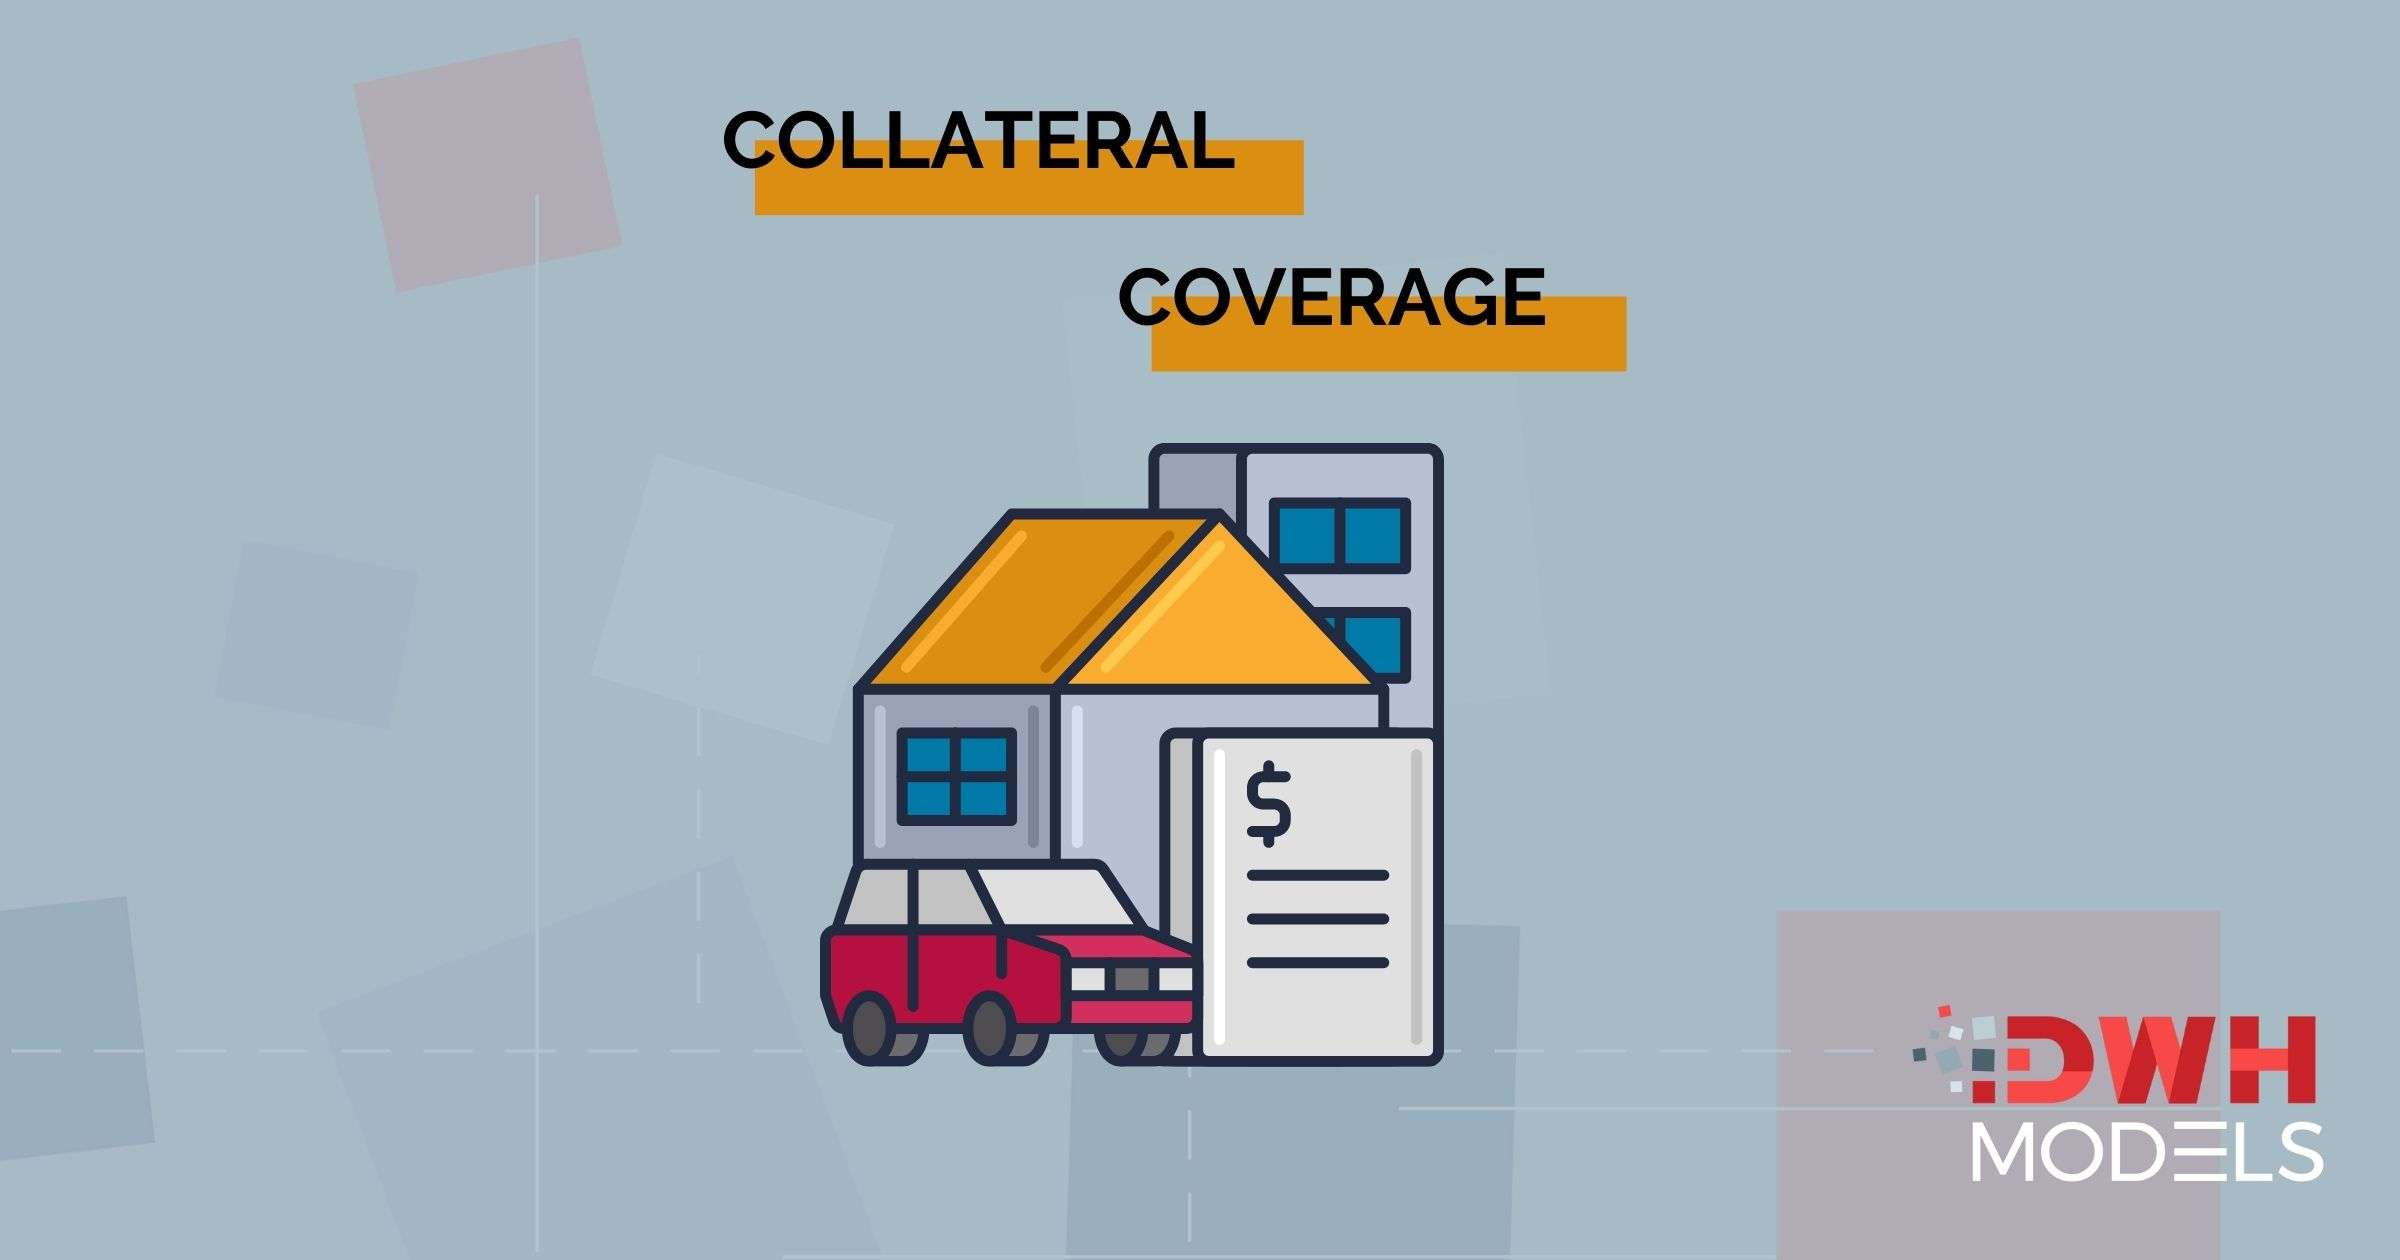 collateral coverage